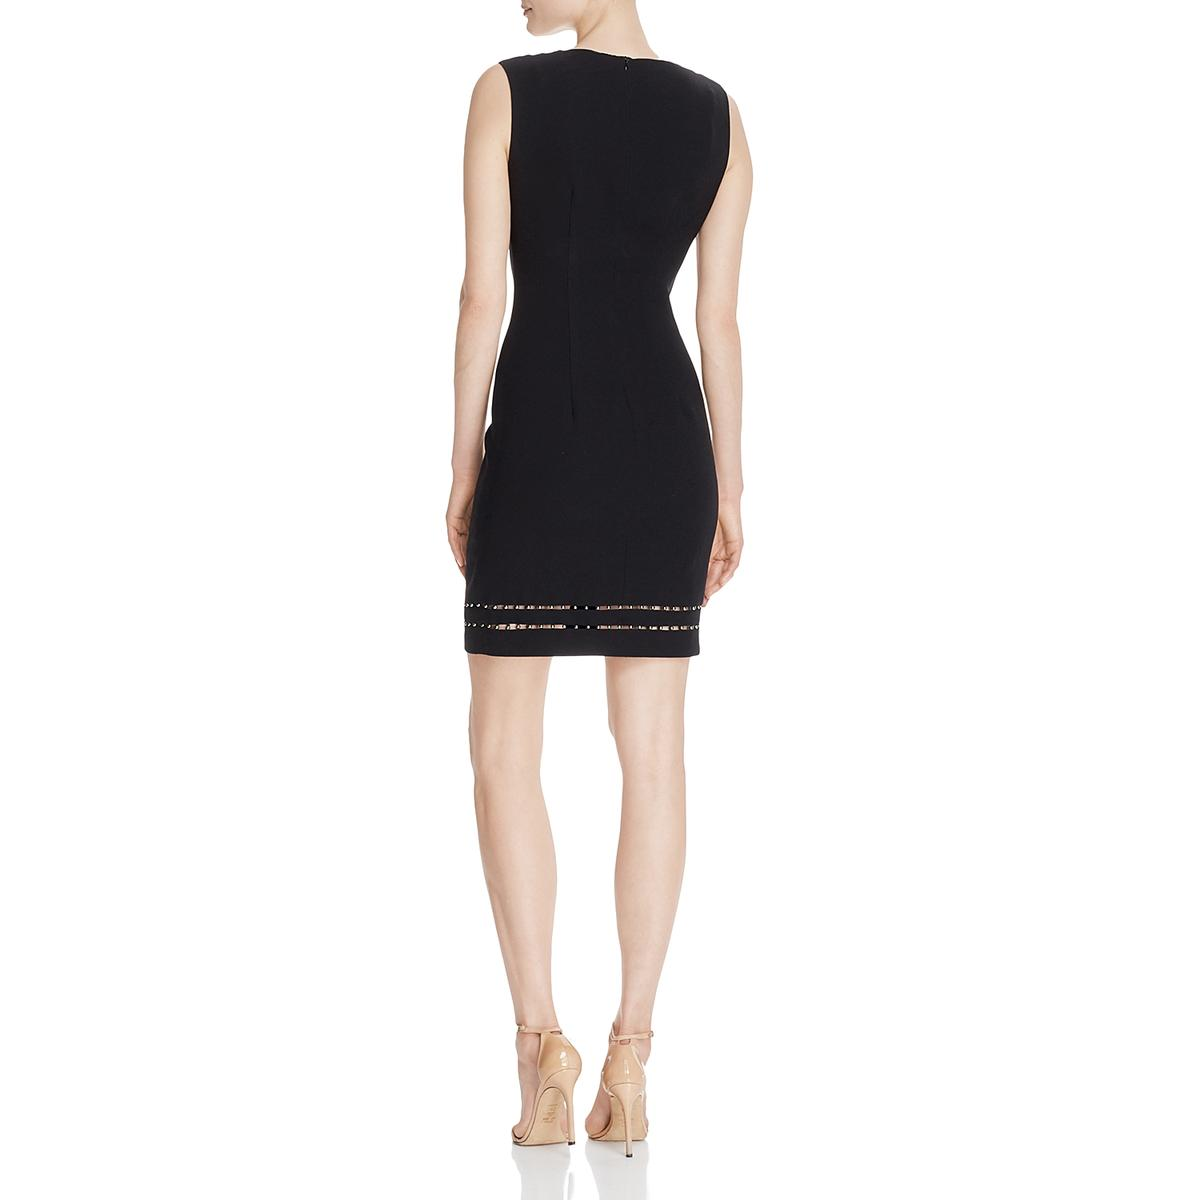 7620d9e9760e0 Details about Elie Tahari Womens Carol Party Special Occasion Cocktail  Dress BHFO 4268